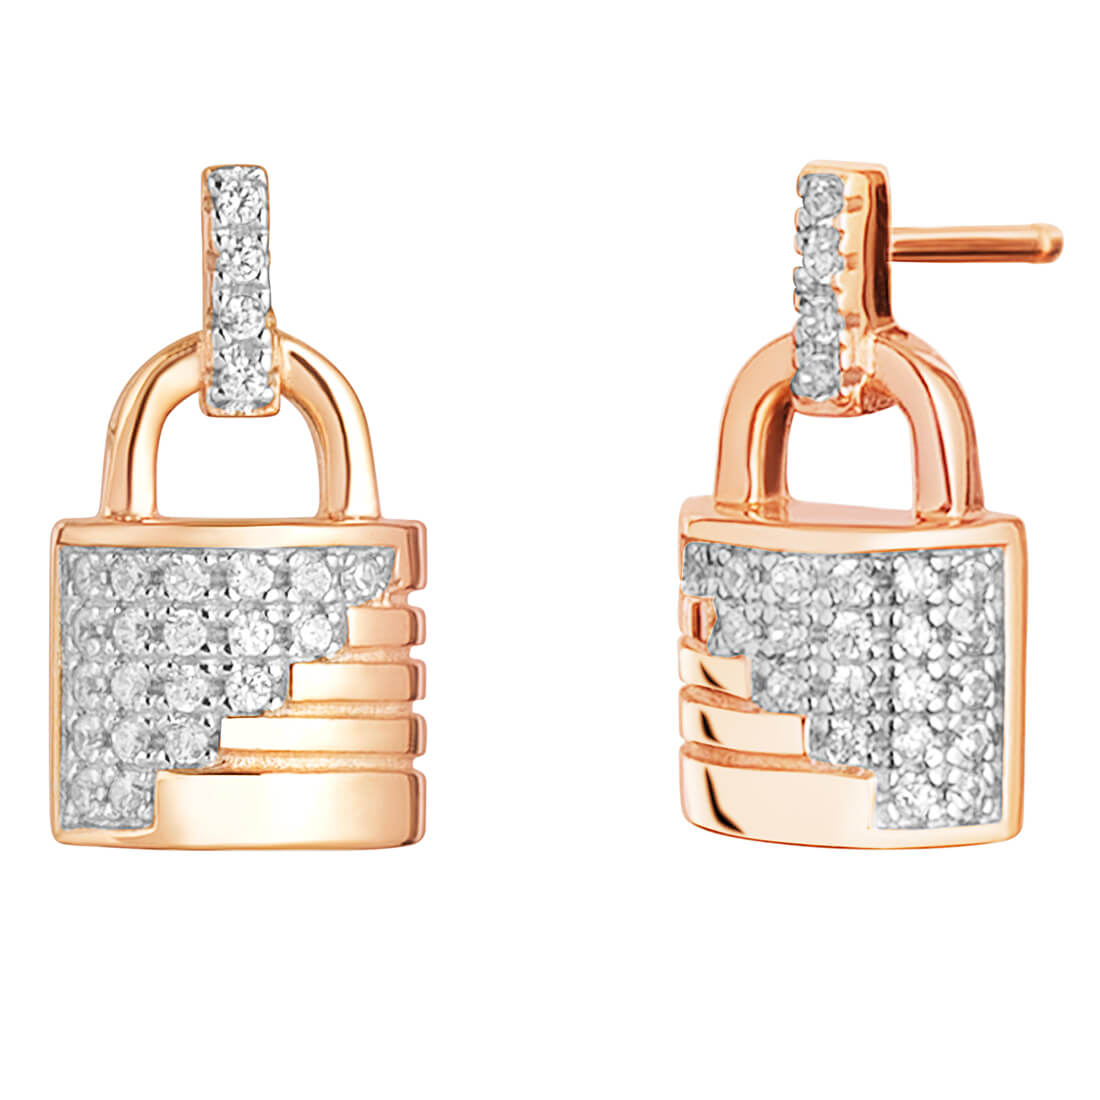 CZ Ribbed Padlock Rose Plated Earrings in Sterling Silver